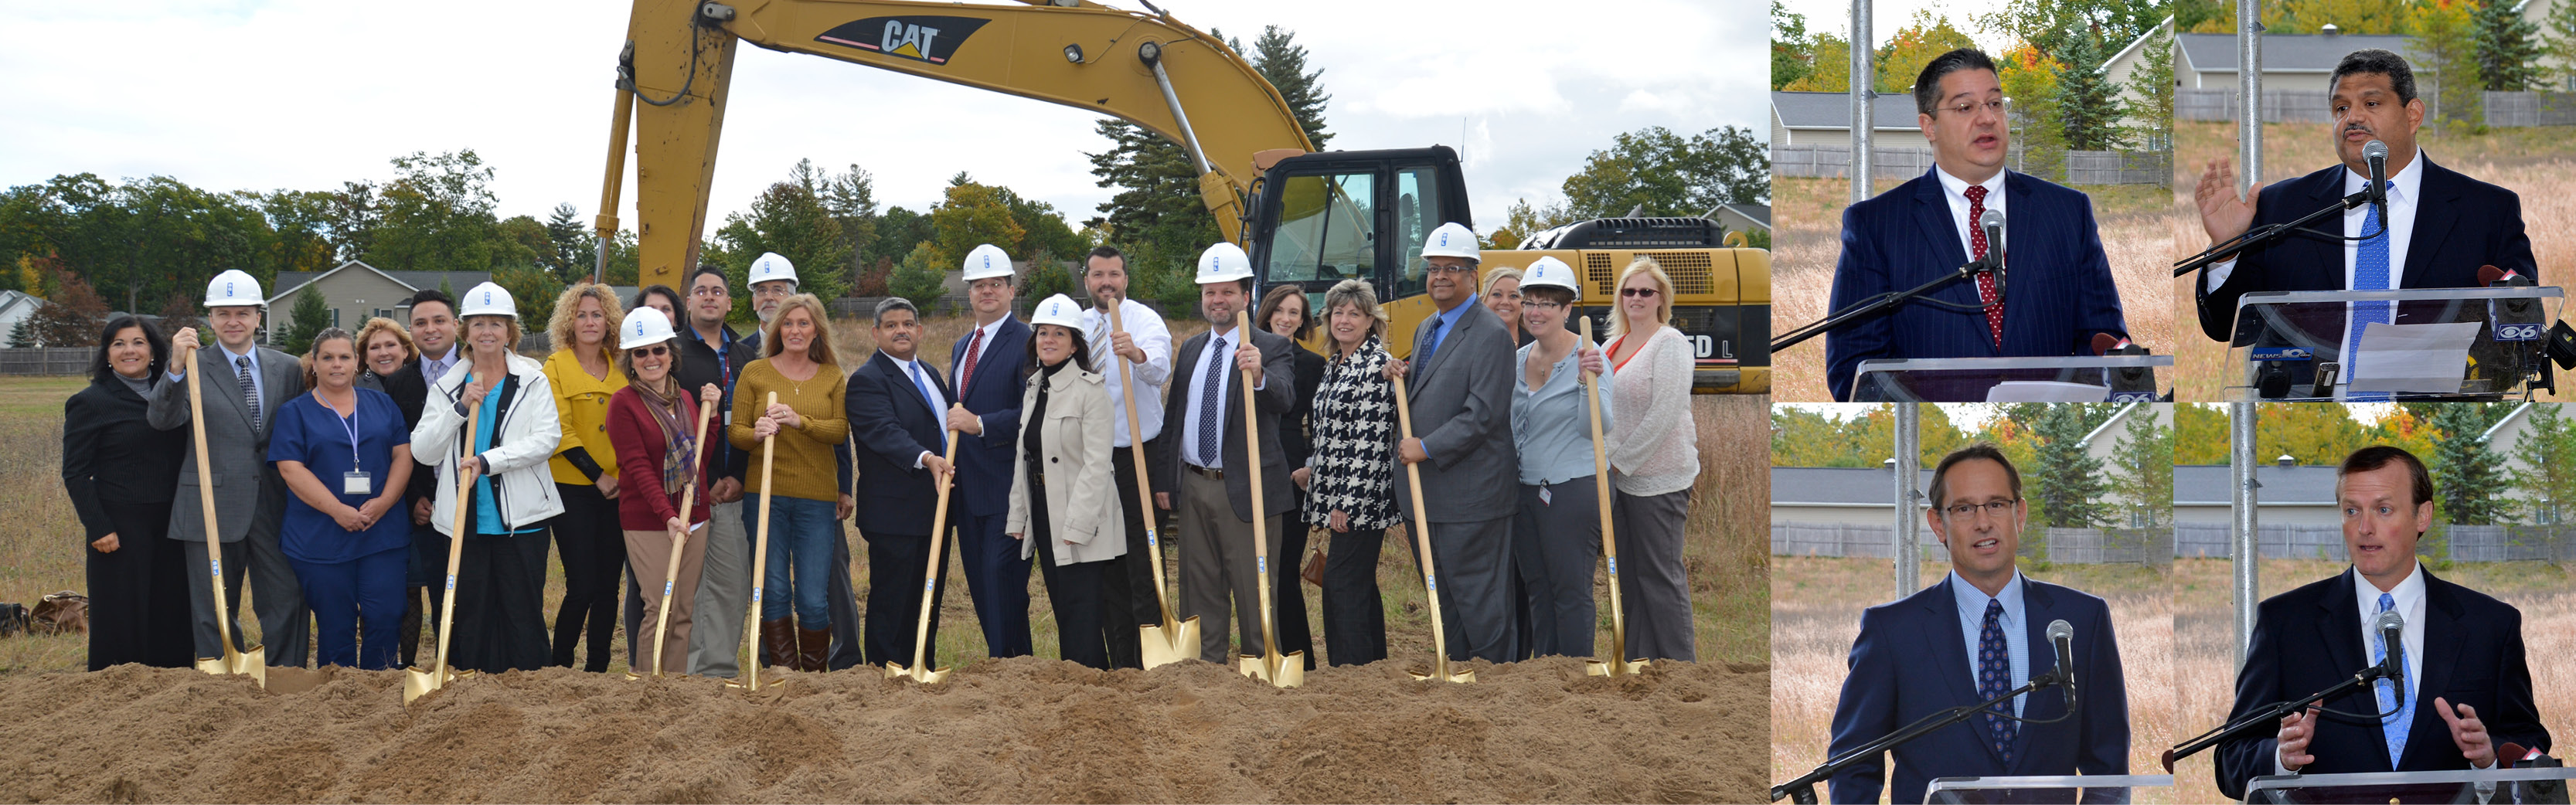 Groundbreaking for Community Care Physicians Medical Arts Complex